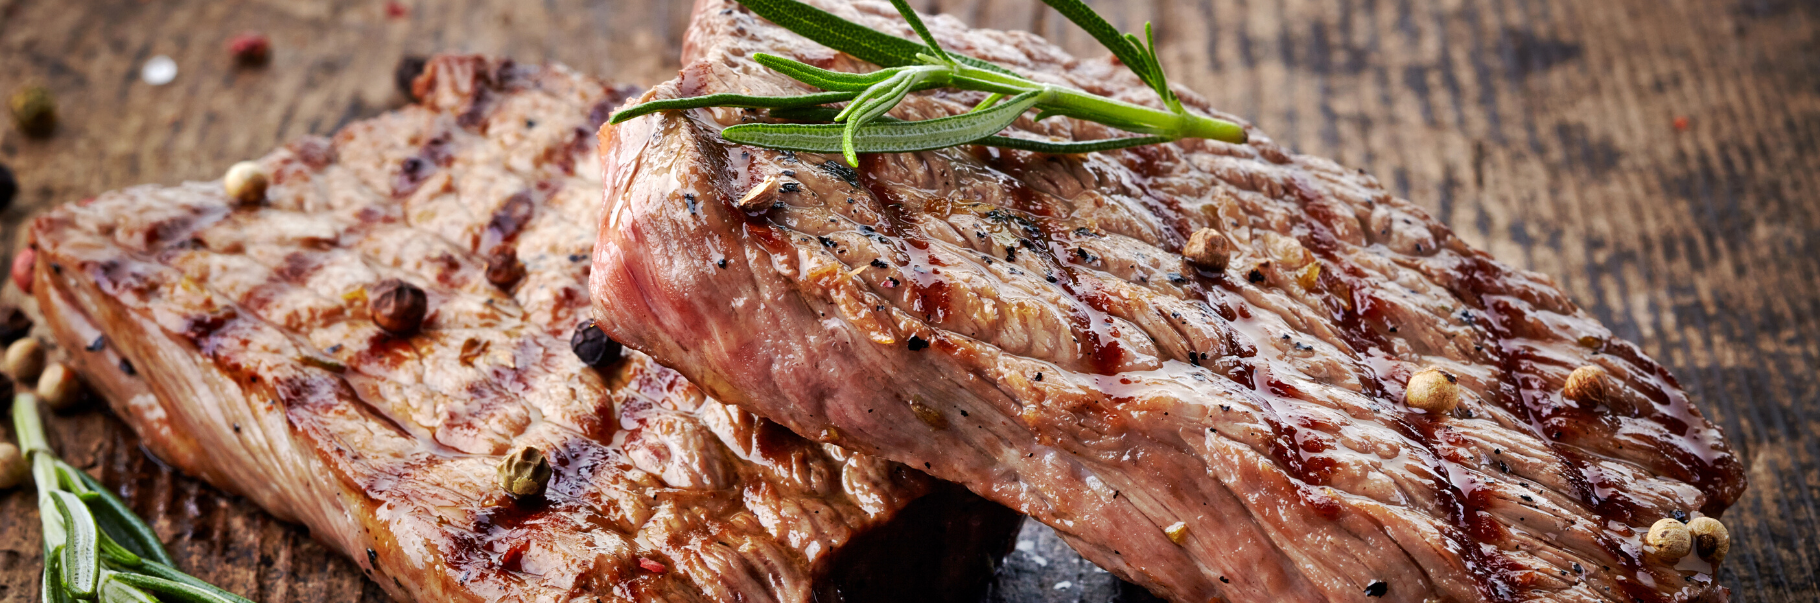 7 Benefits to Eating Local Grenadian Grass-Fed Beef